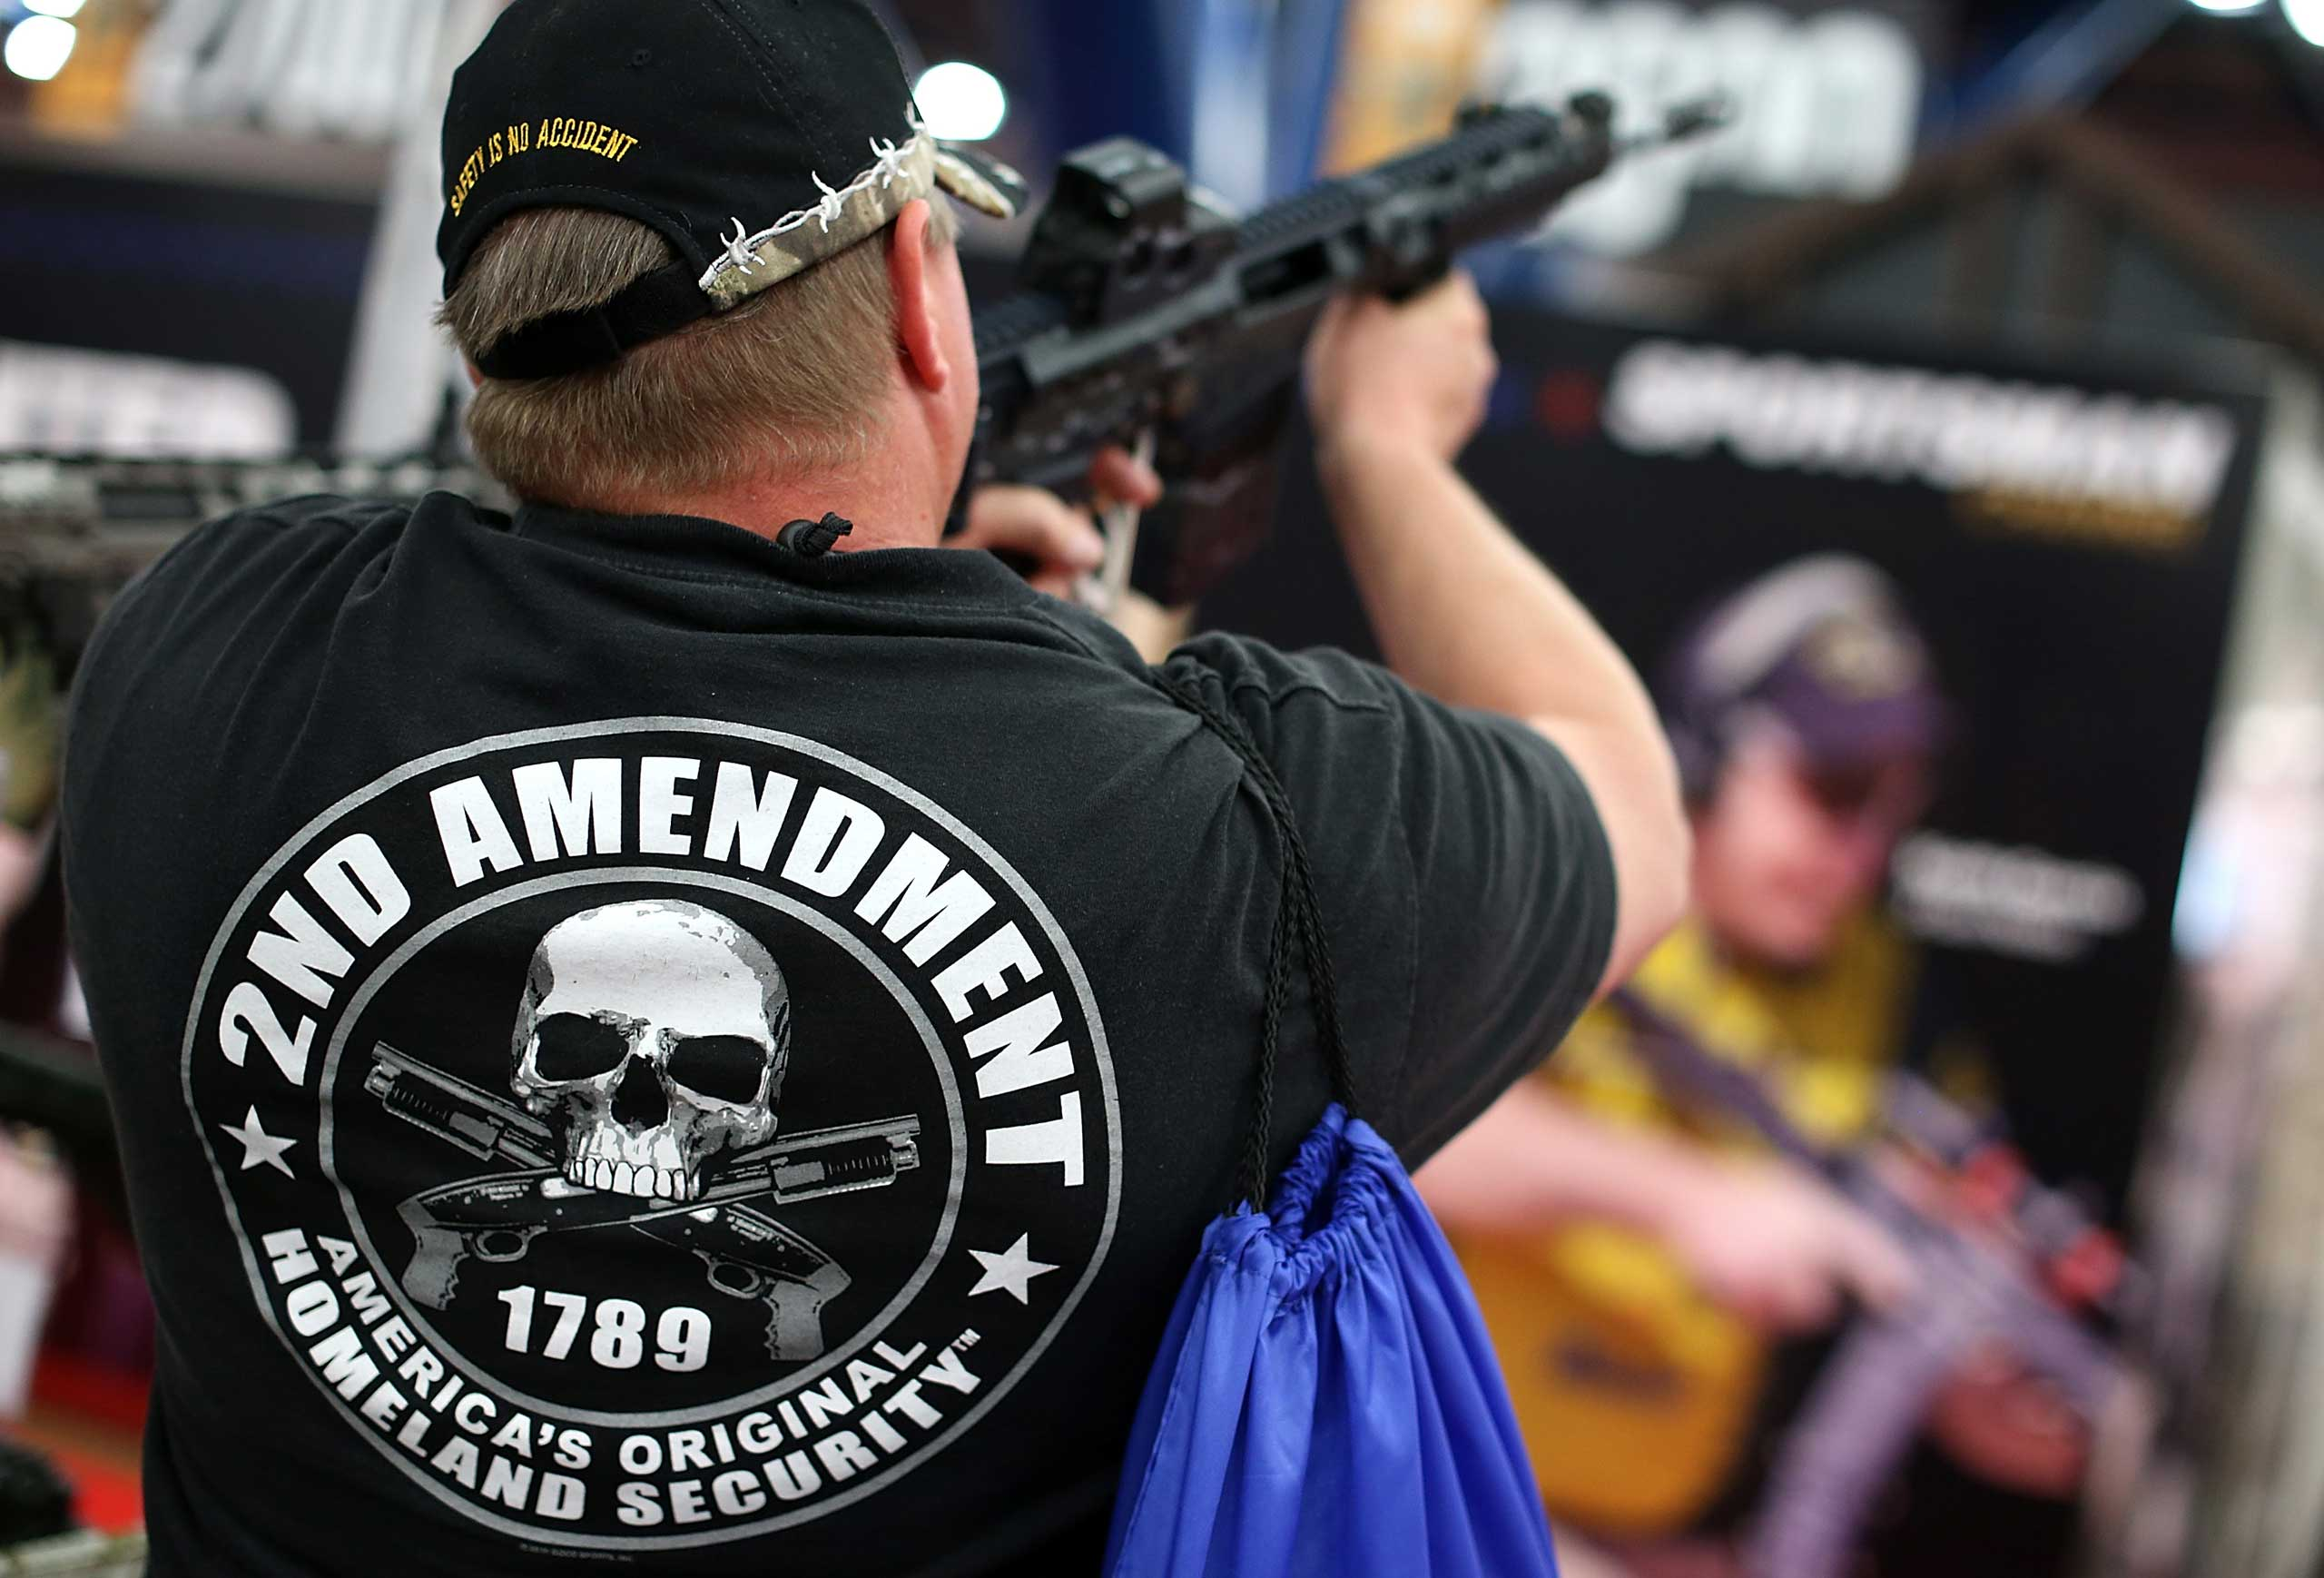 An attendee wears a 2nd amendment shirt while inspecting an assault rifle during the 2013 NRA Annual Meeting and Exhibits at the George R. Brown Convention Center on May 5, 2013 in Houston, Texas.